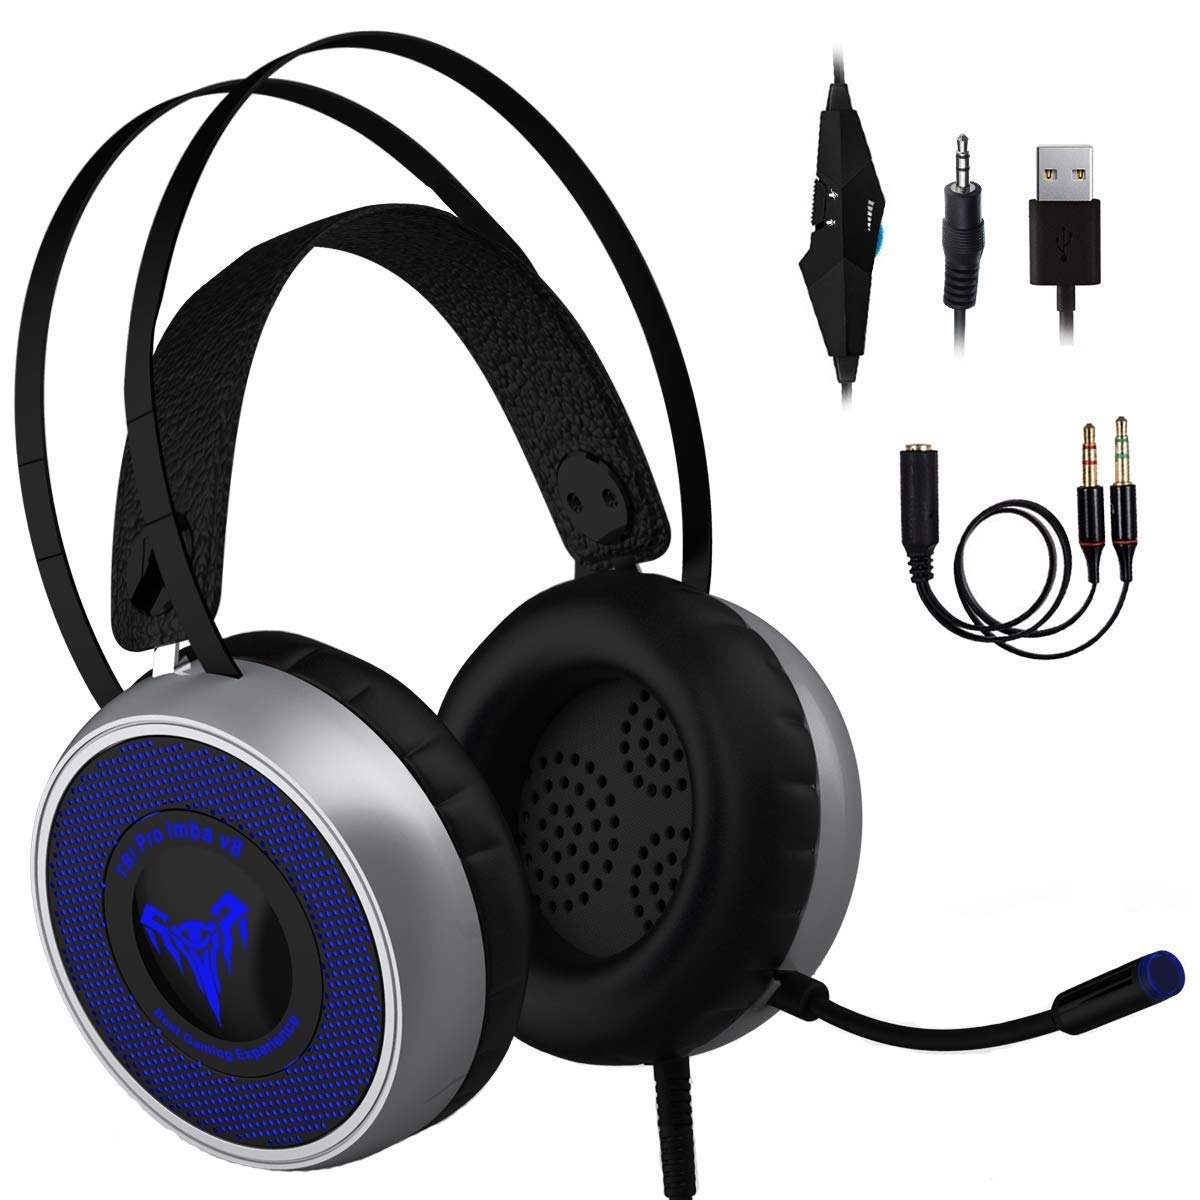 [Newest 2020] Gaming Headset for Xbox One, S, PS4, PC with LED Soft Breathing Earmuffs, Adjustable Microphone, Comfortable Mute & Volume Control, 3.5mm Adapter for Laptop, PS3 (Regular)